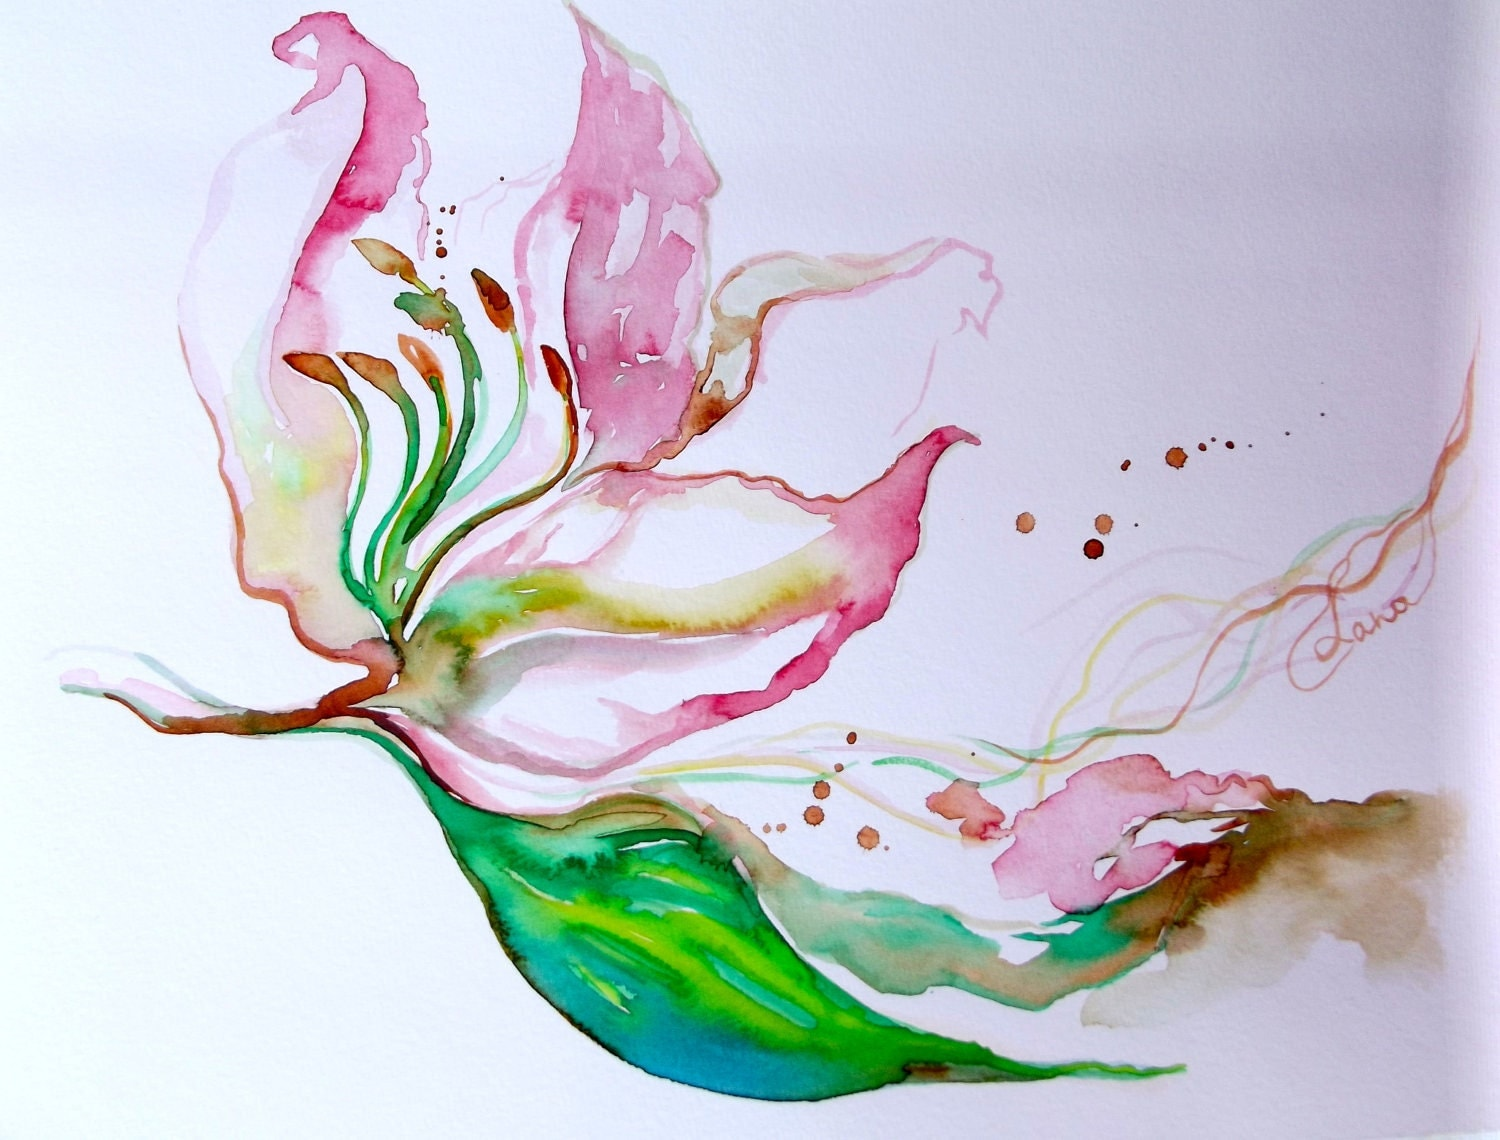 Flowers Painting Abstract Original Watercolor Pink Coral